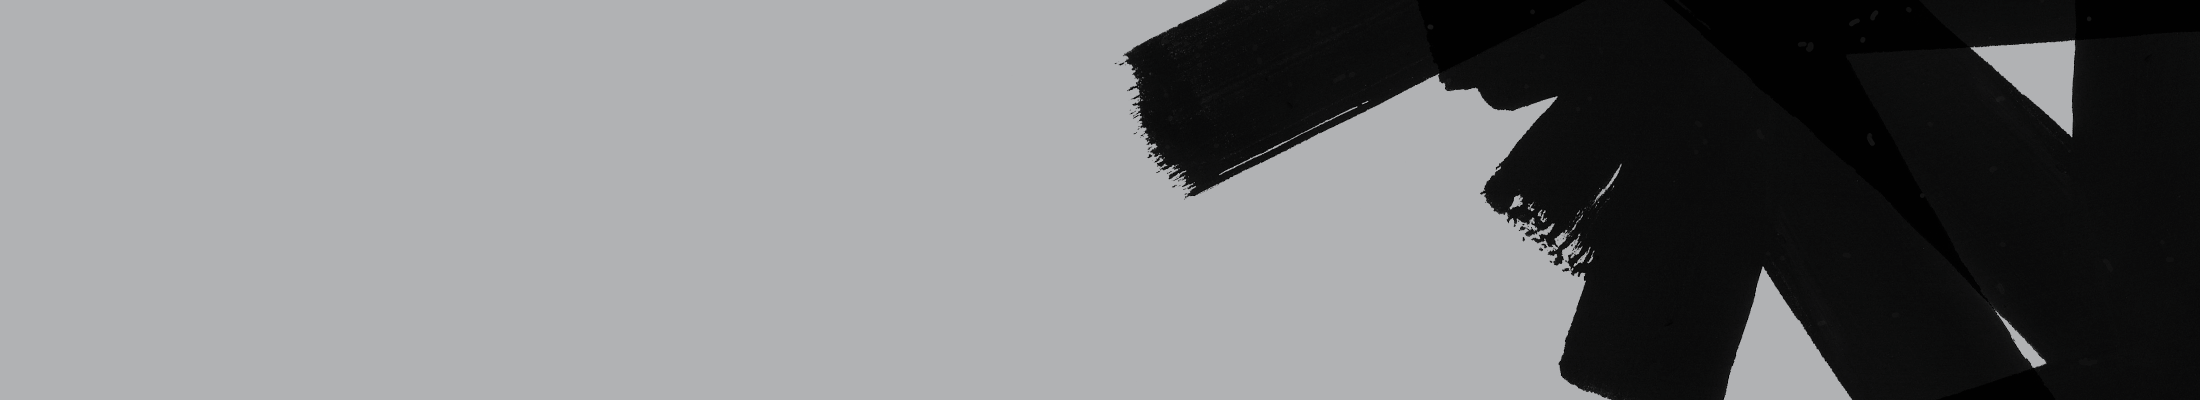 black brush strokes on grey background